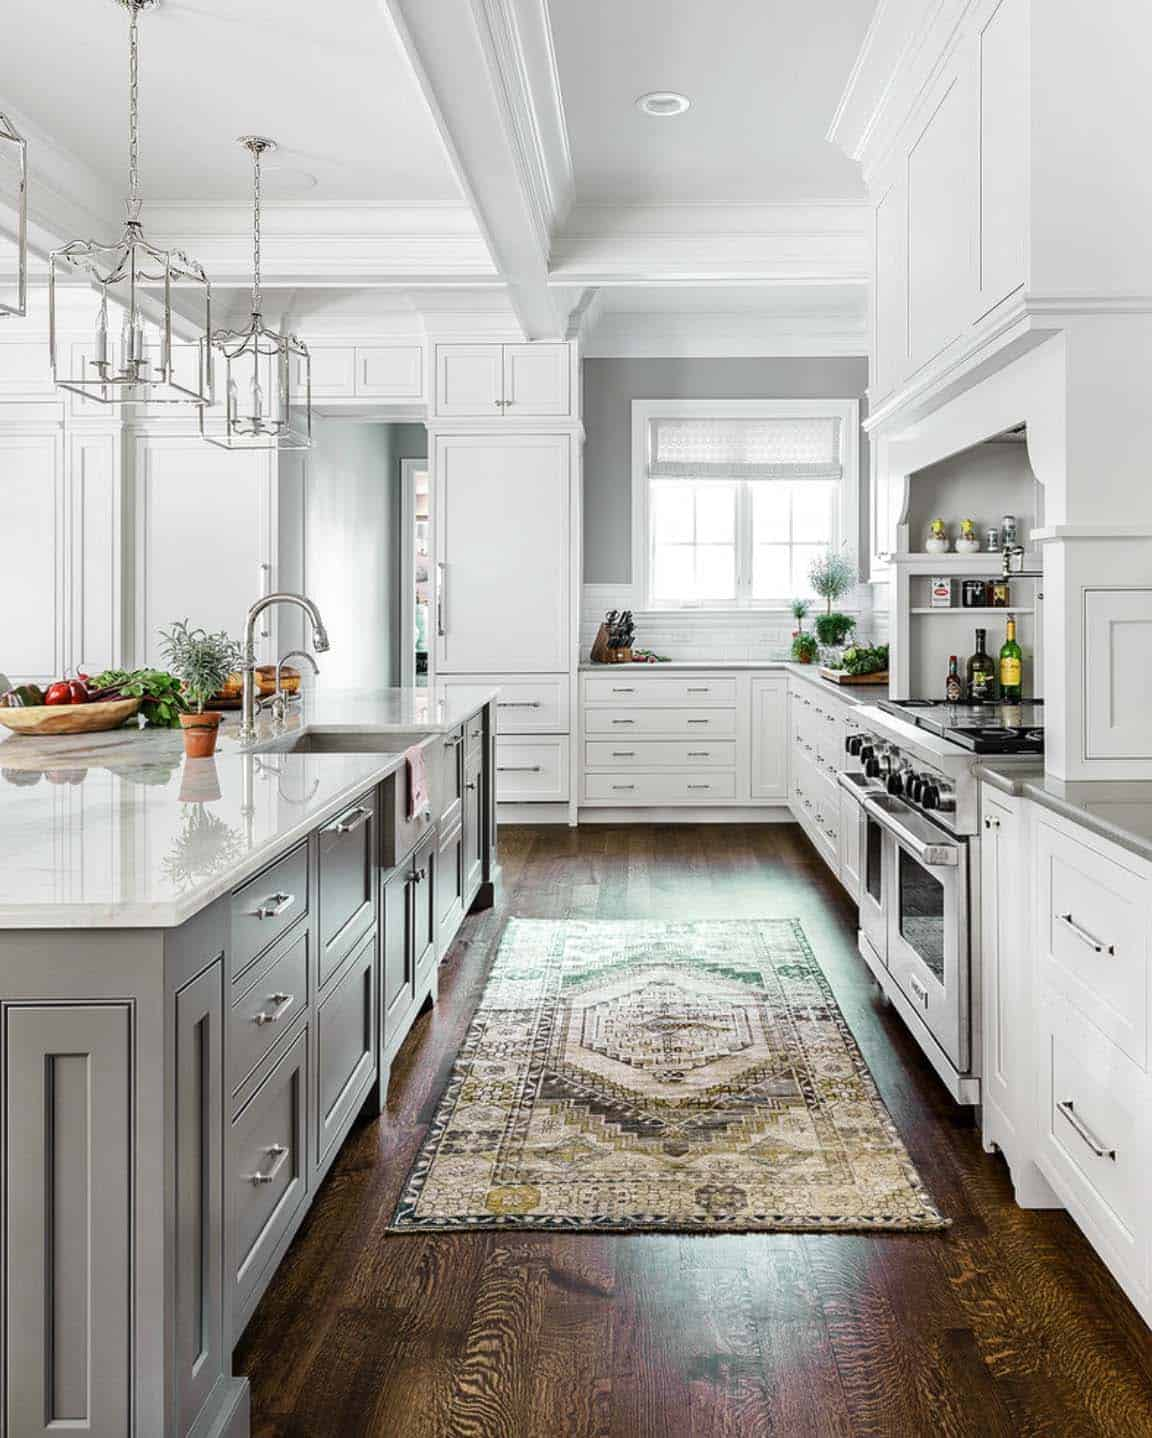 Best Countertops For Kitchen: 30+ Beautiful And Inspiring Light-filled Kitchens With